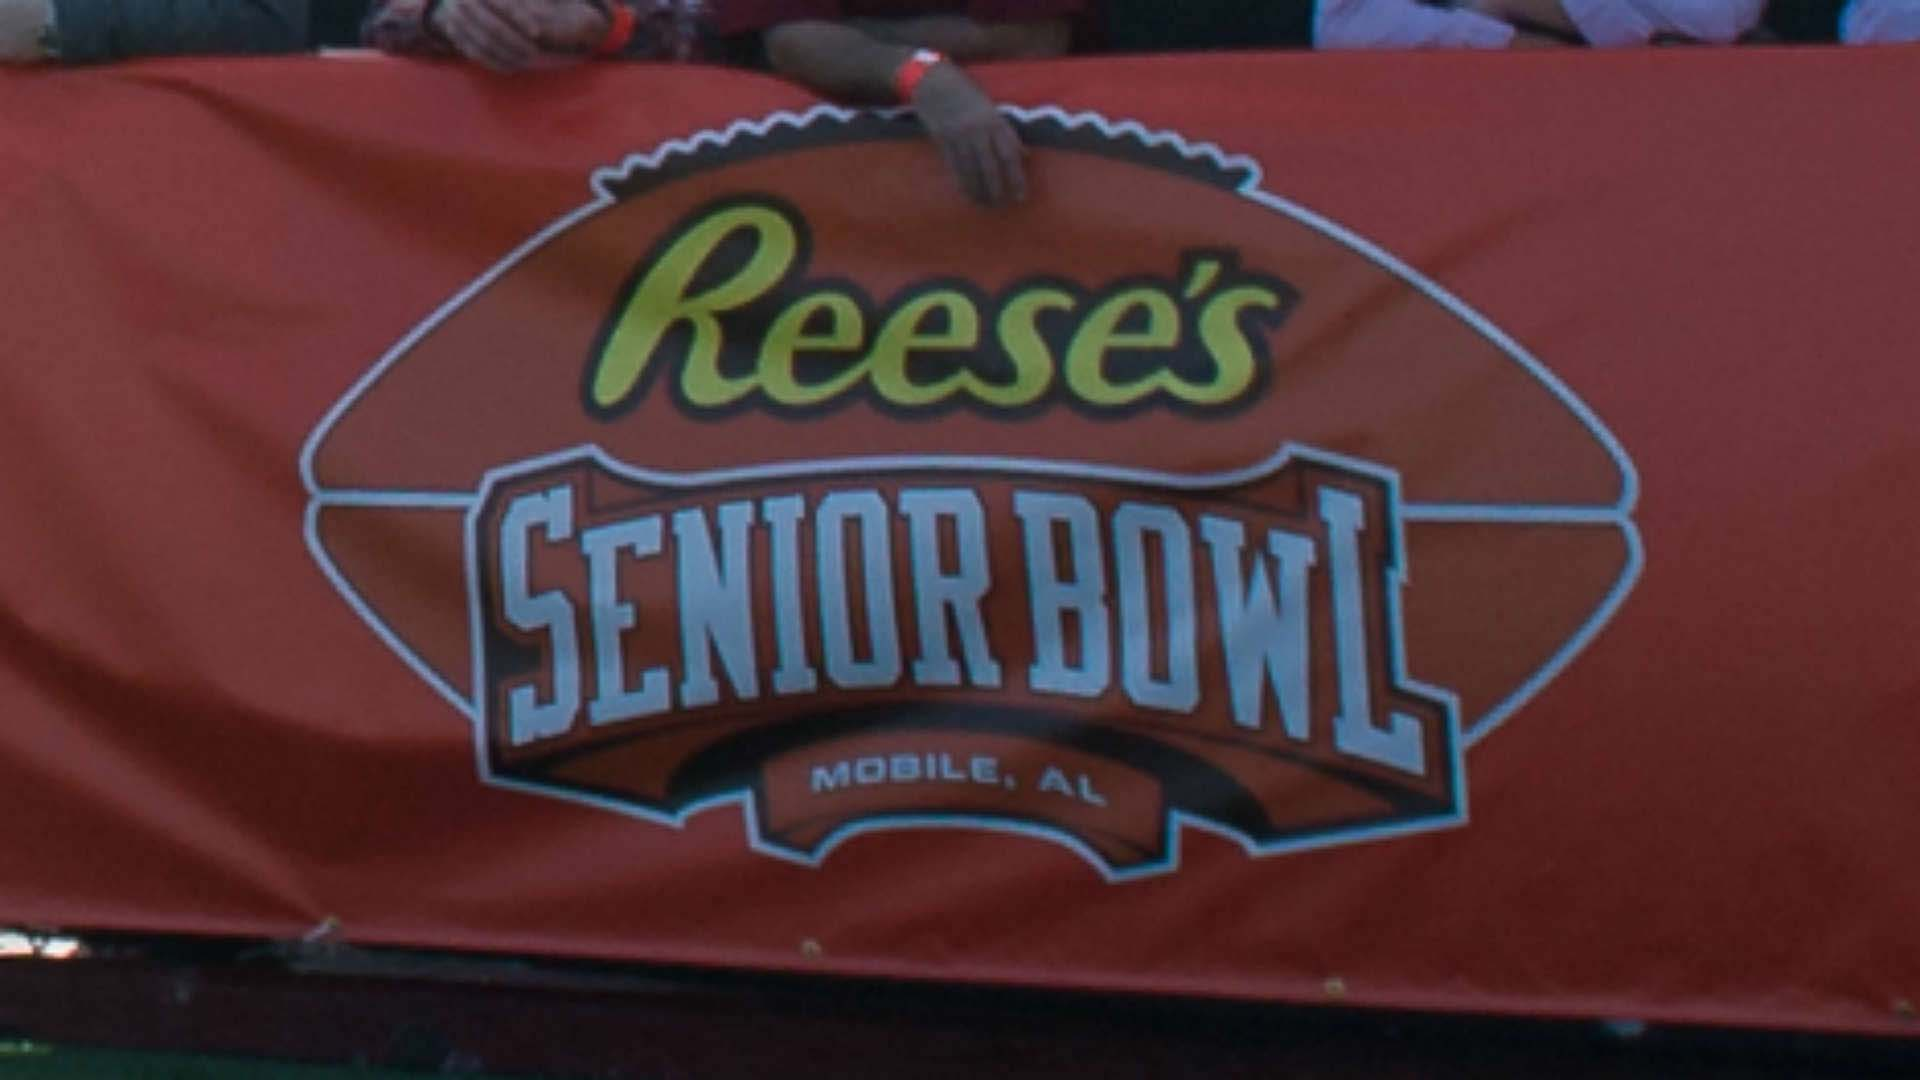 Senior Bowl 2019: Date, time, TV channel, rosters